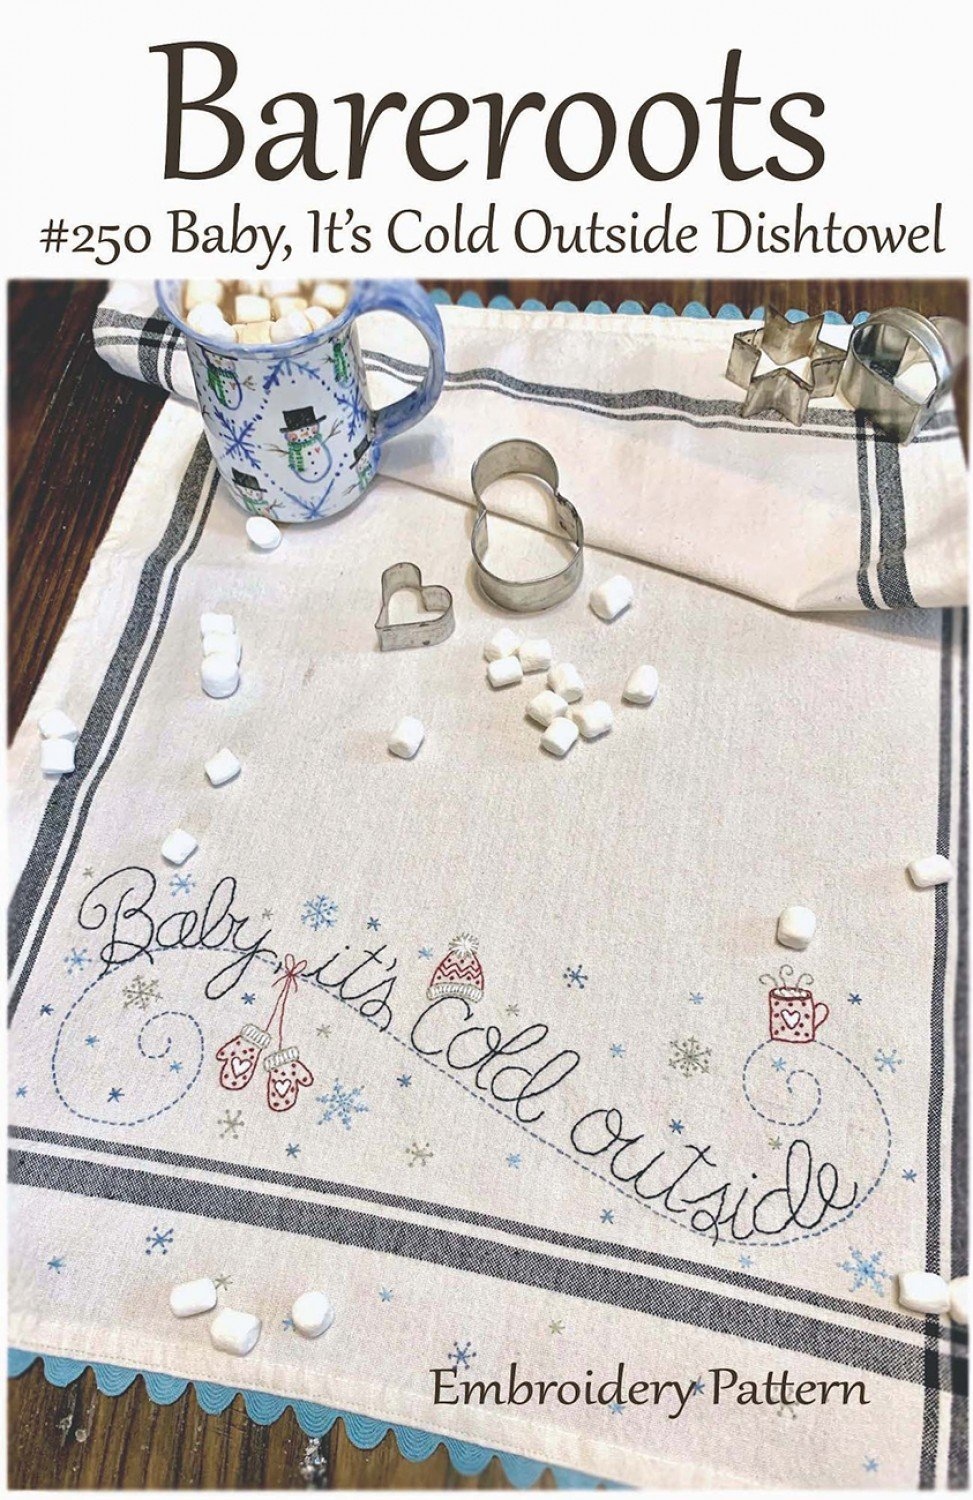 Bareroots - Dishtowel Pattern and Floss Kit - 01 January - Baby It's Cold Outside - BR250K